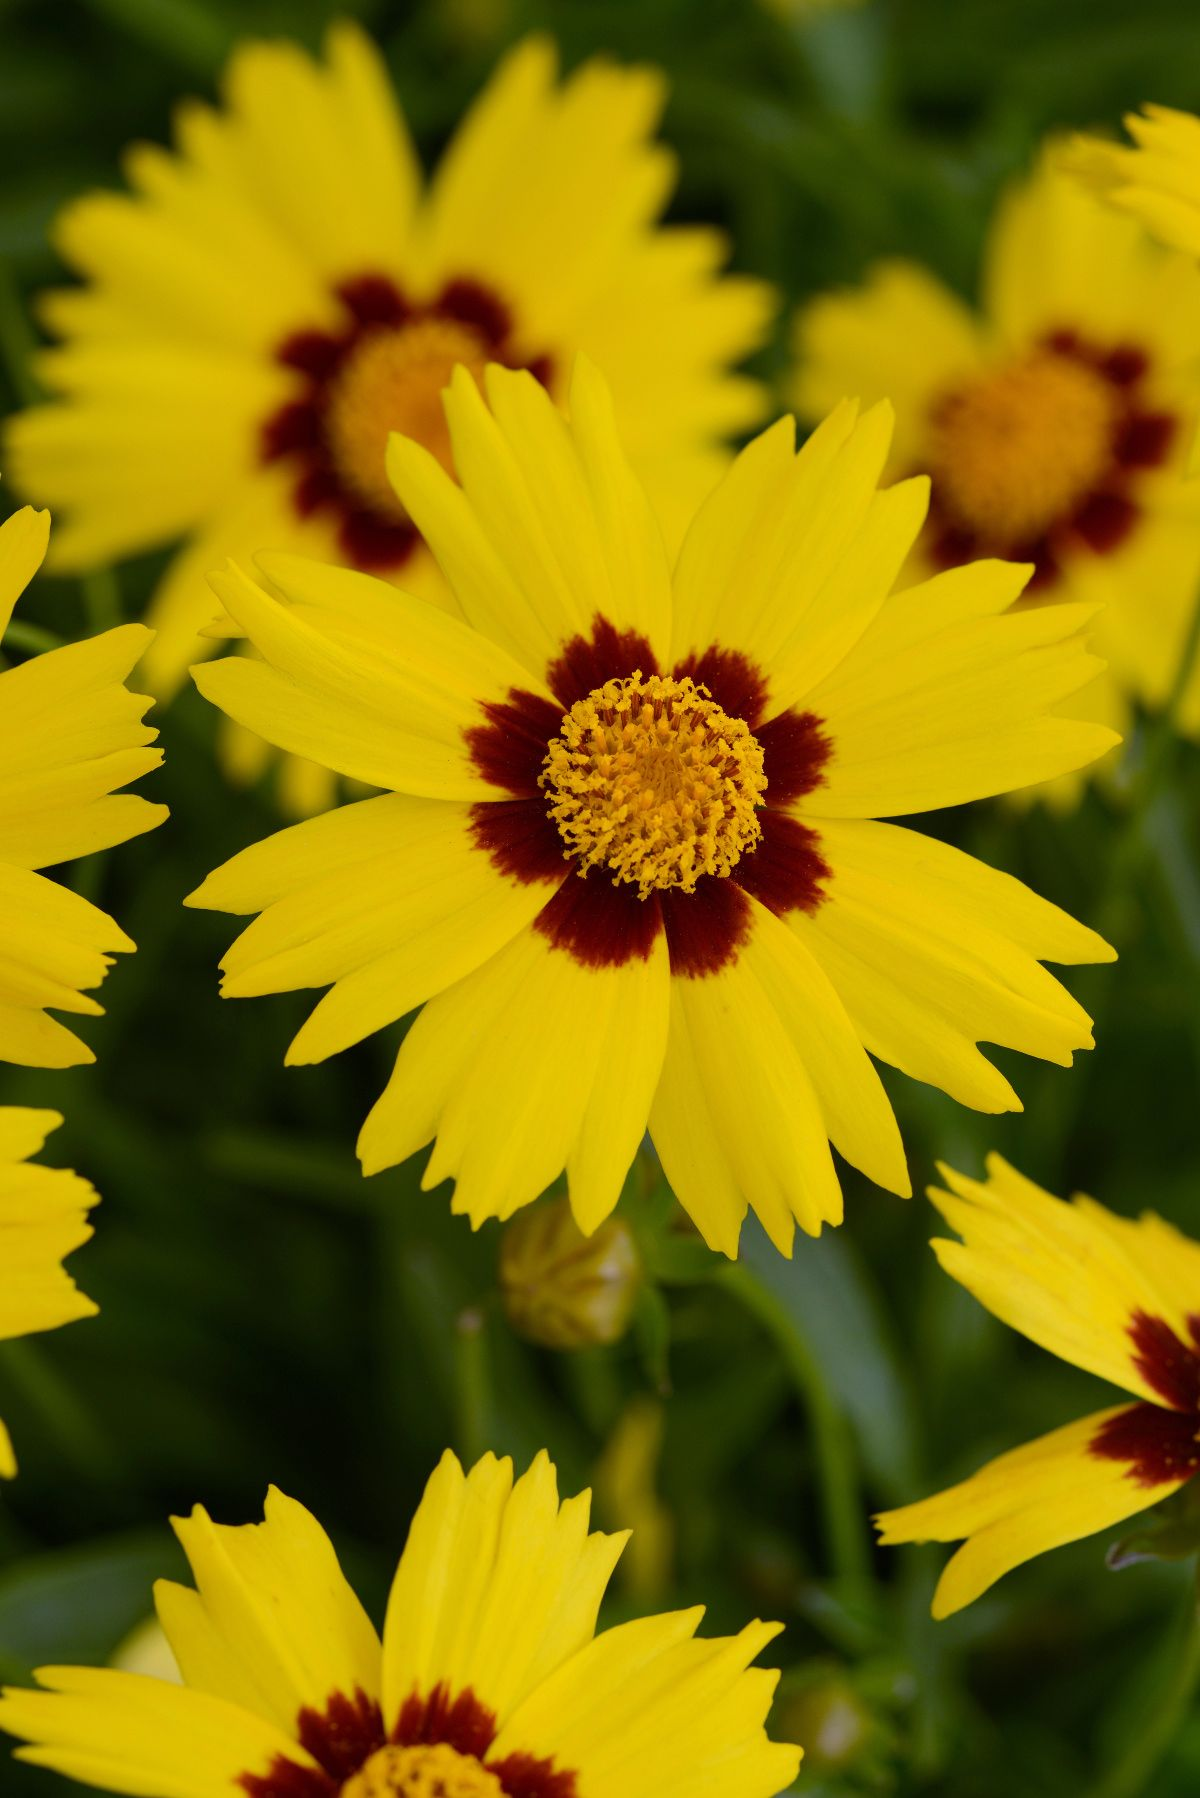 Coreopsis SunKiss from Kieft Seed - Year of the Coreopsis - National